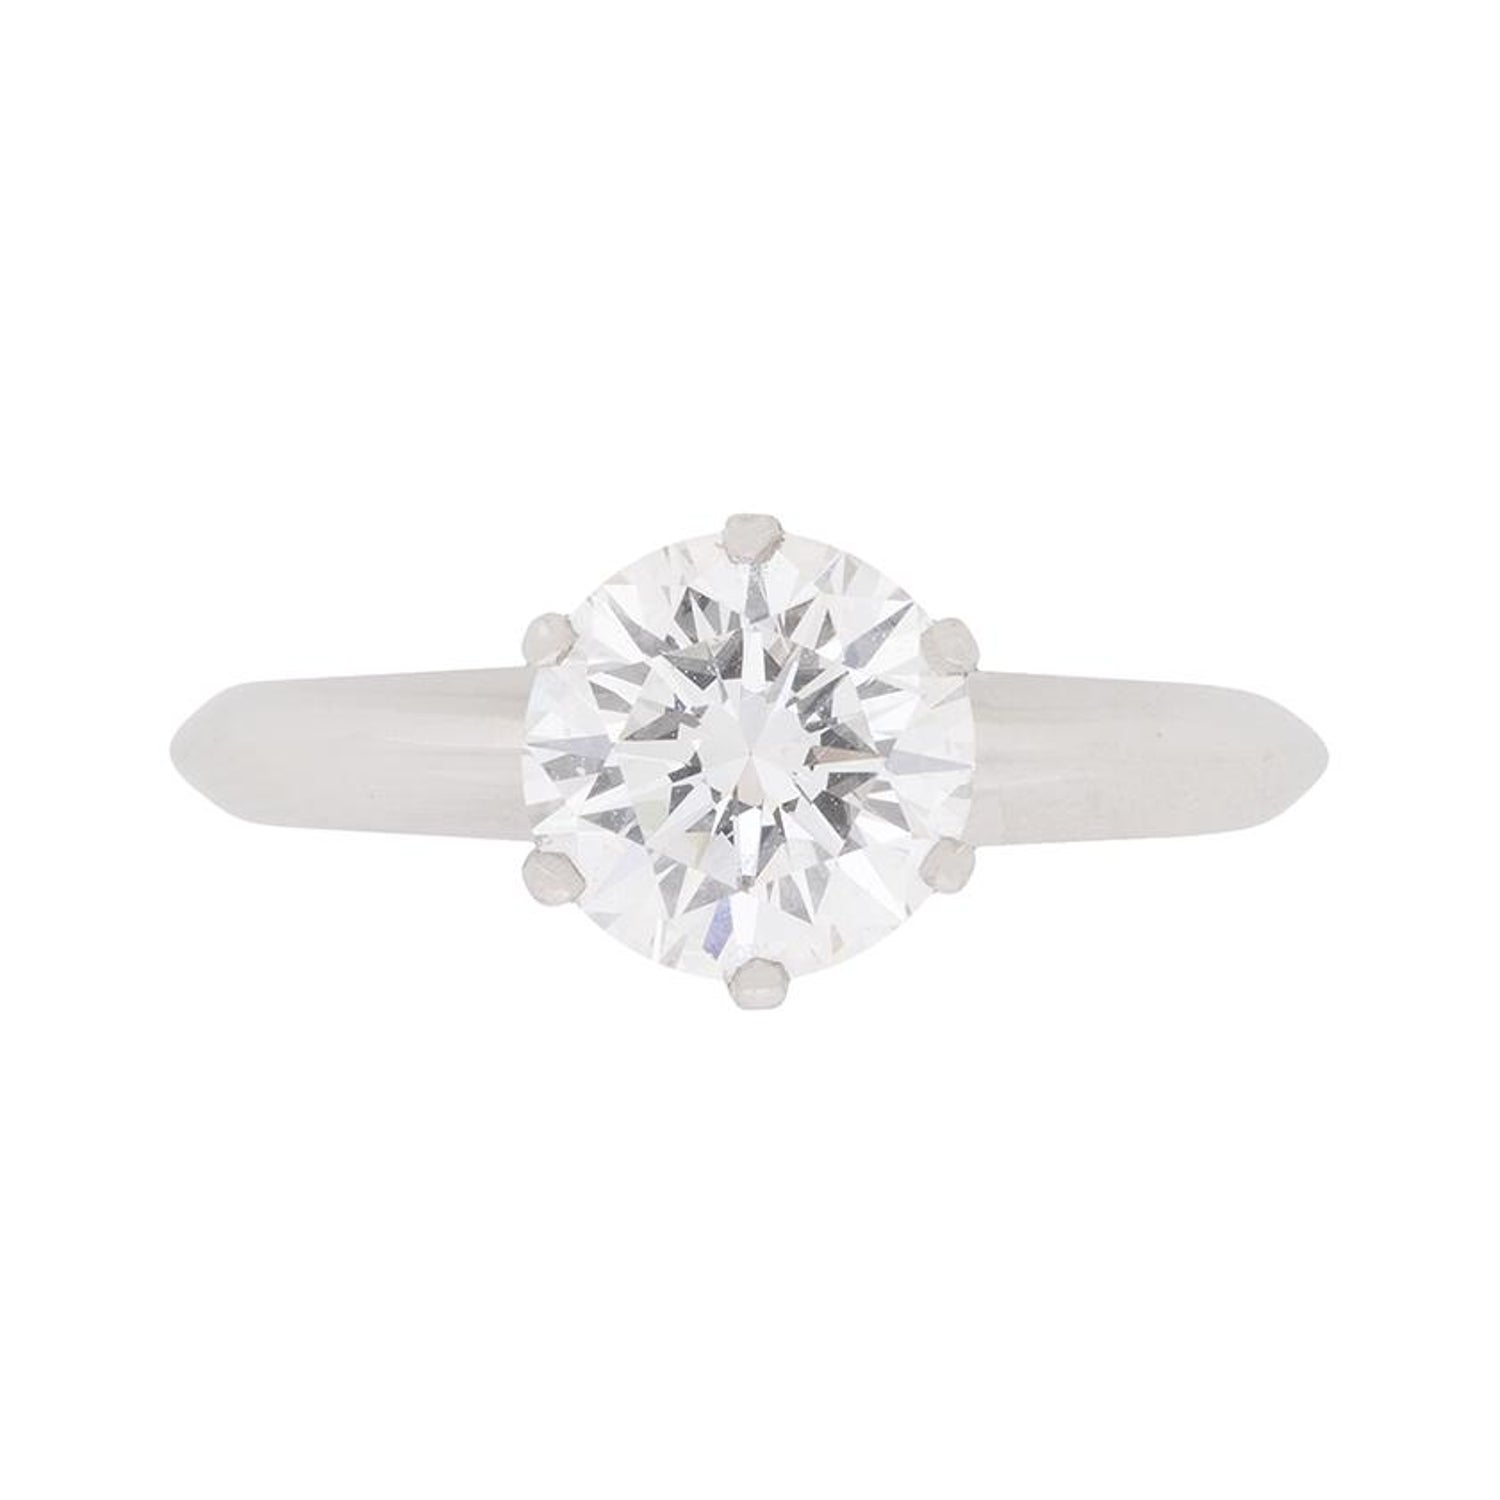 984be9d8d GIA 1.24 Carat Tiffany and Co. Round Brilliant Cut Diamond Solitaire Ring  For Sale at 1stdibs